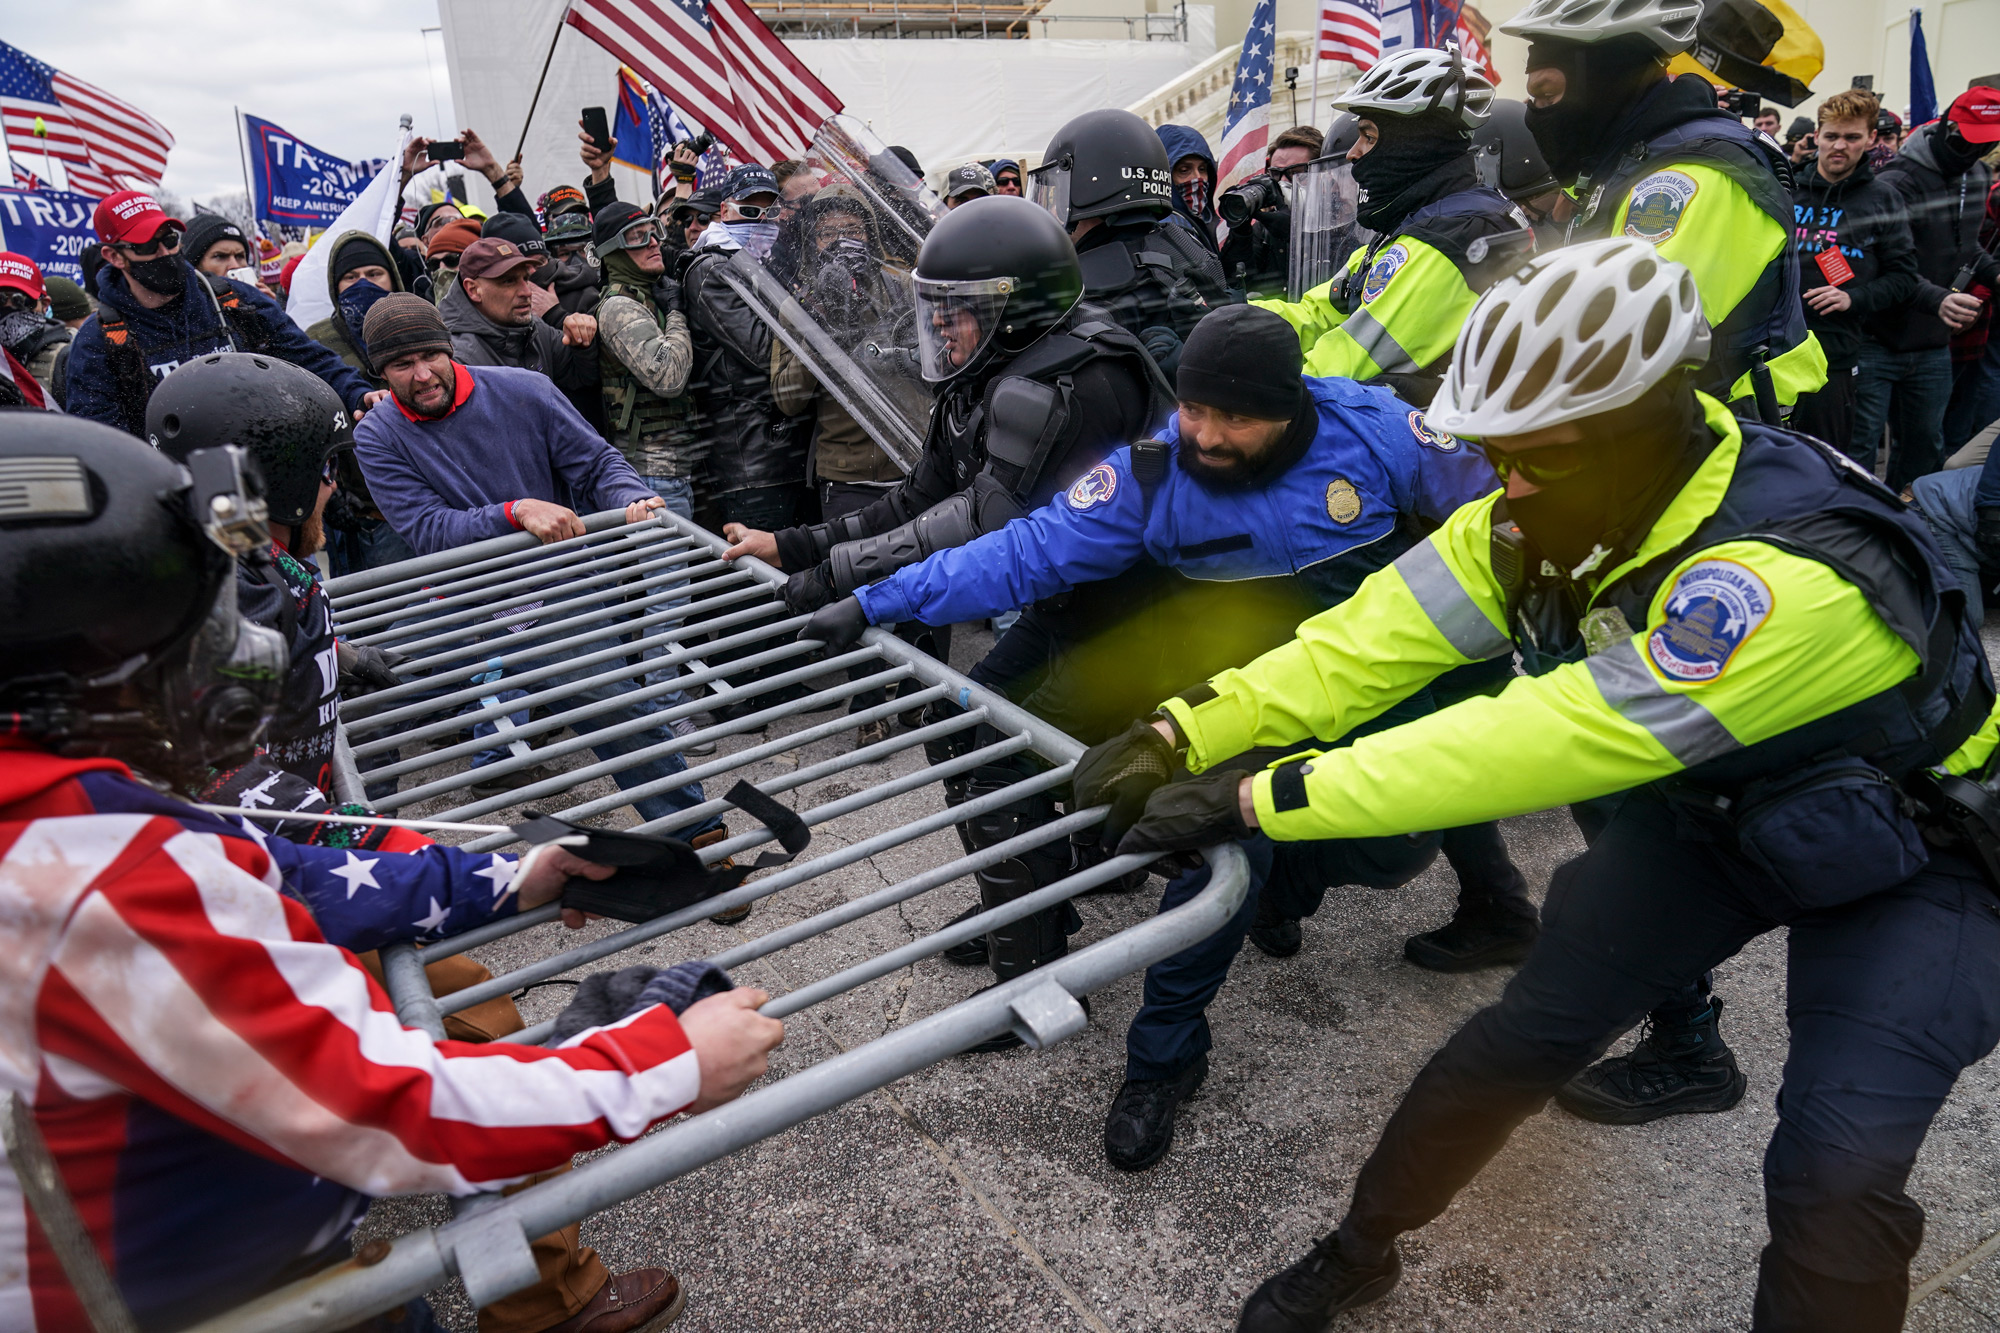 Trump supporters try to break through a police barrier on January 6 at the Capitol in Washington, DC.